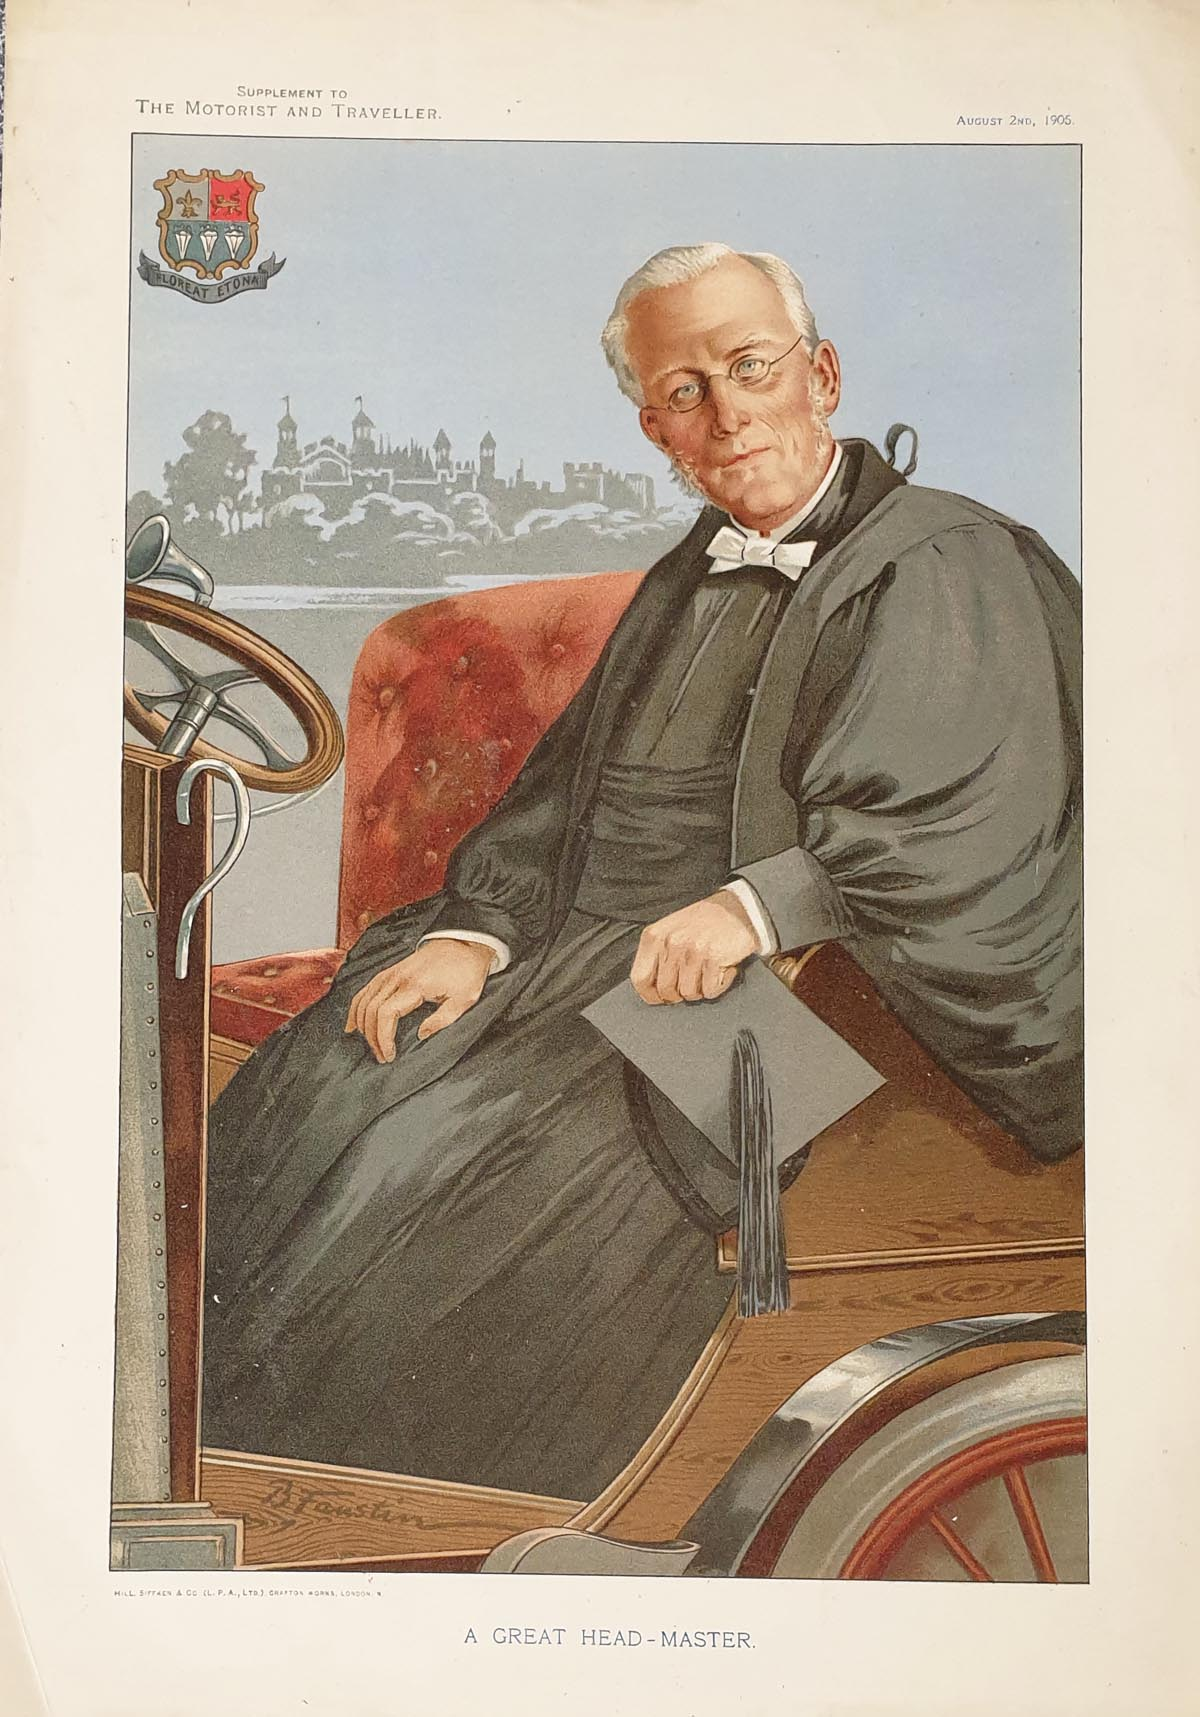 Original Motorist and Traveller Print for sale Headmaster Eton College